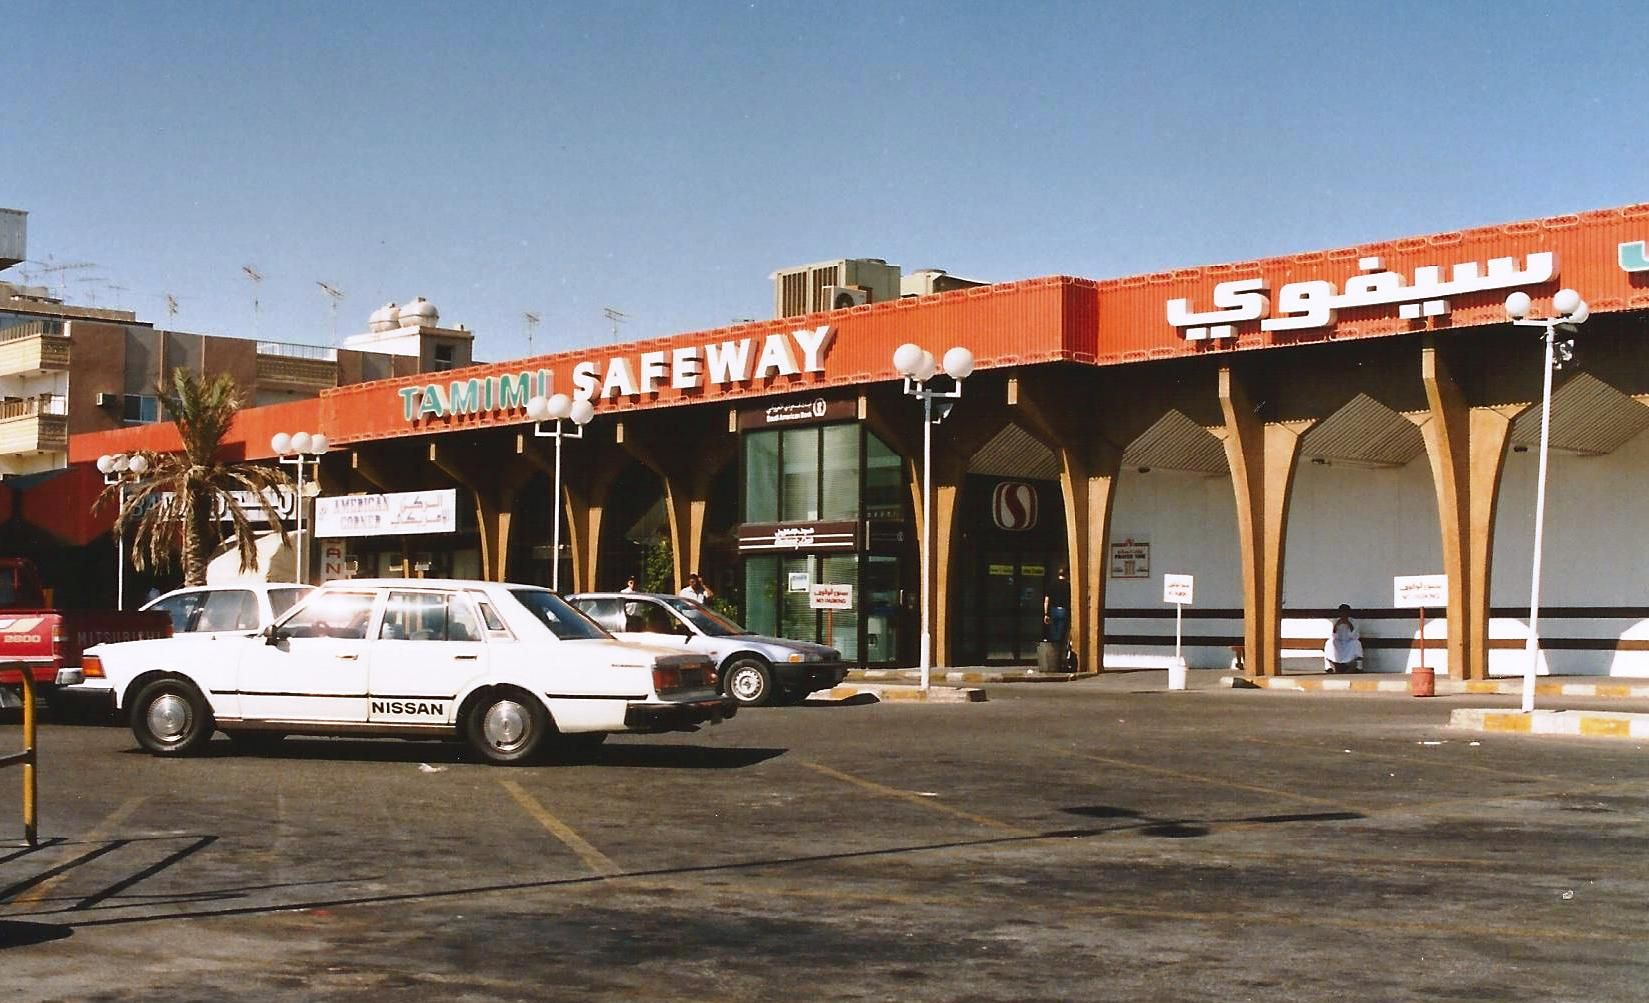 Dammam The Safeway At Al Kobar First Time I Went There About Lunch Time It Was Closed A Few Minutes Later It Opened Life In Saudi Arabia Dammam Tabuk